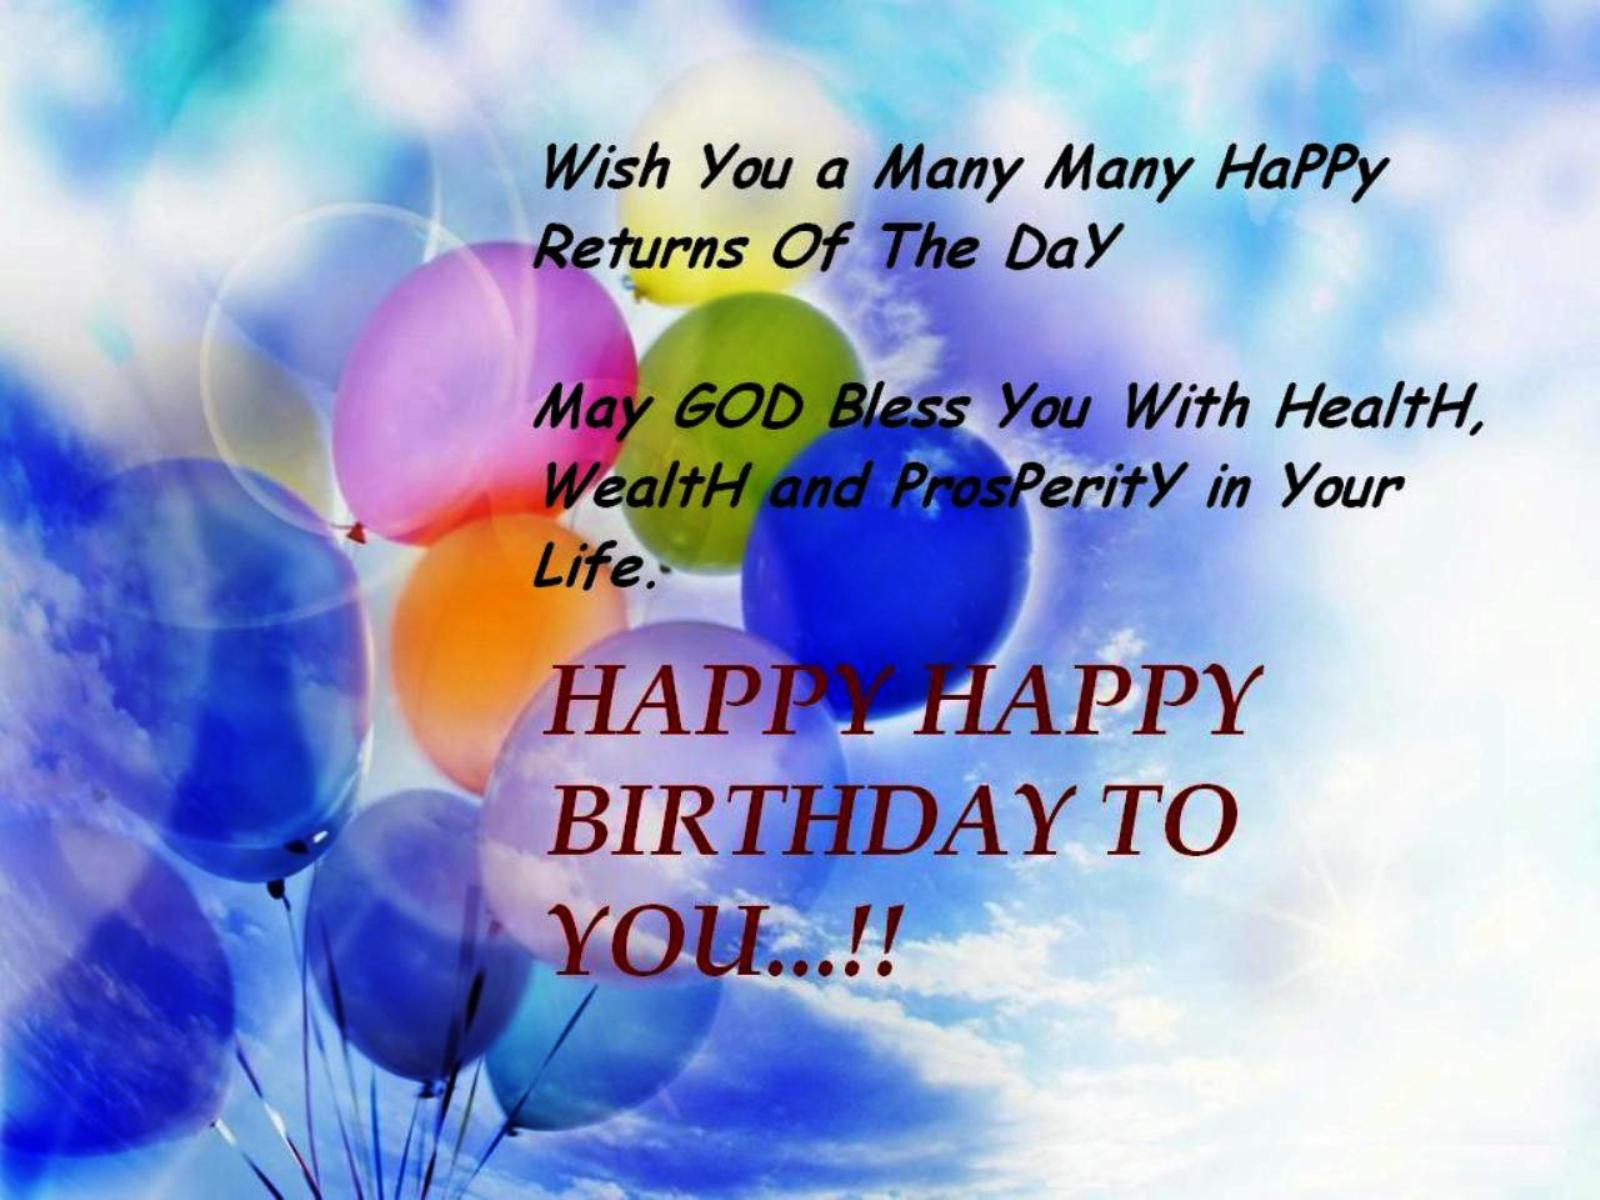 birthday wishes and quotes ; Happy-Birthday-Wishes-Quotes-Birthday-Wishes-Greetings